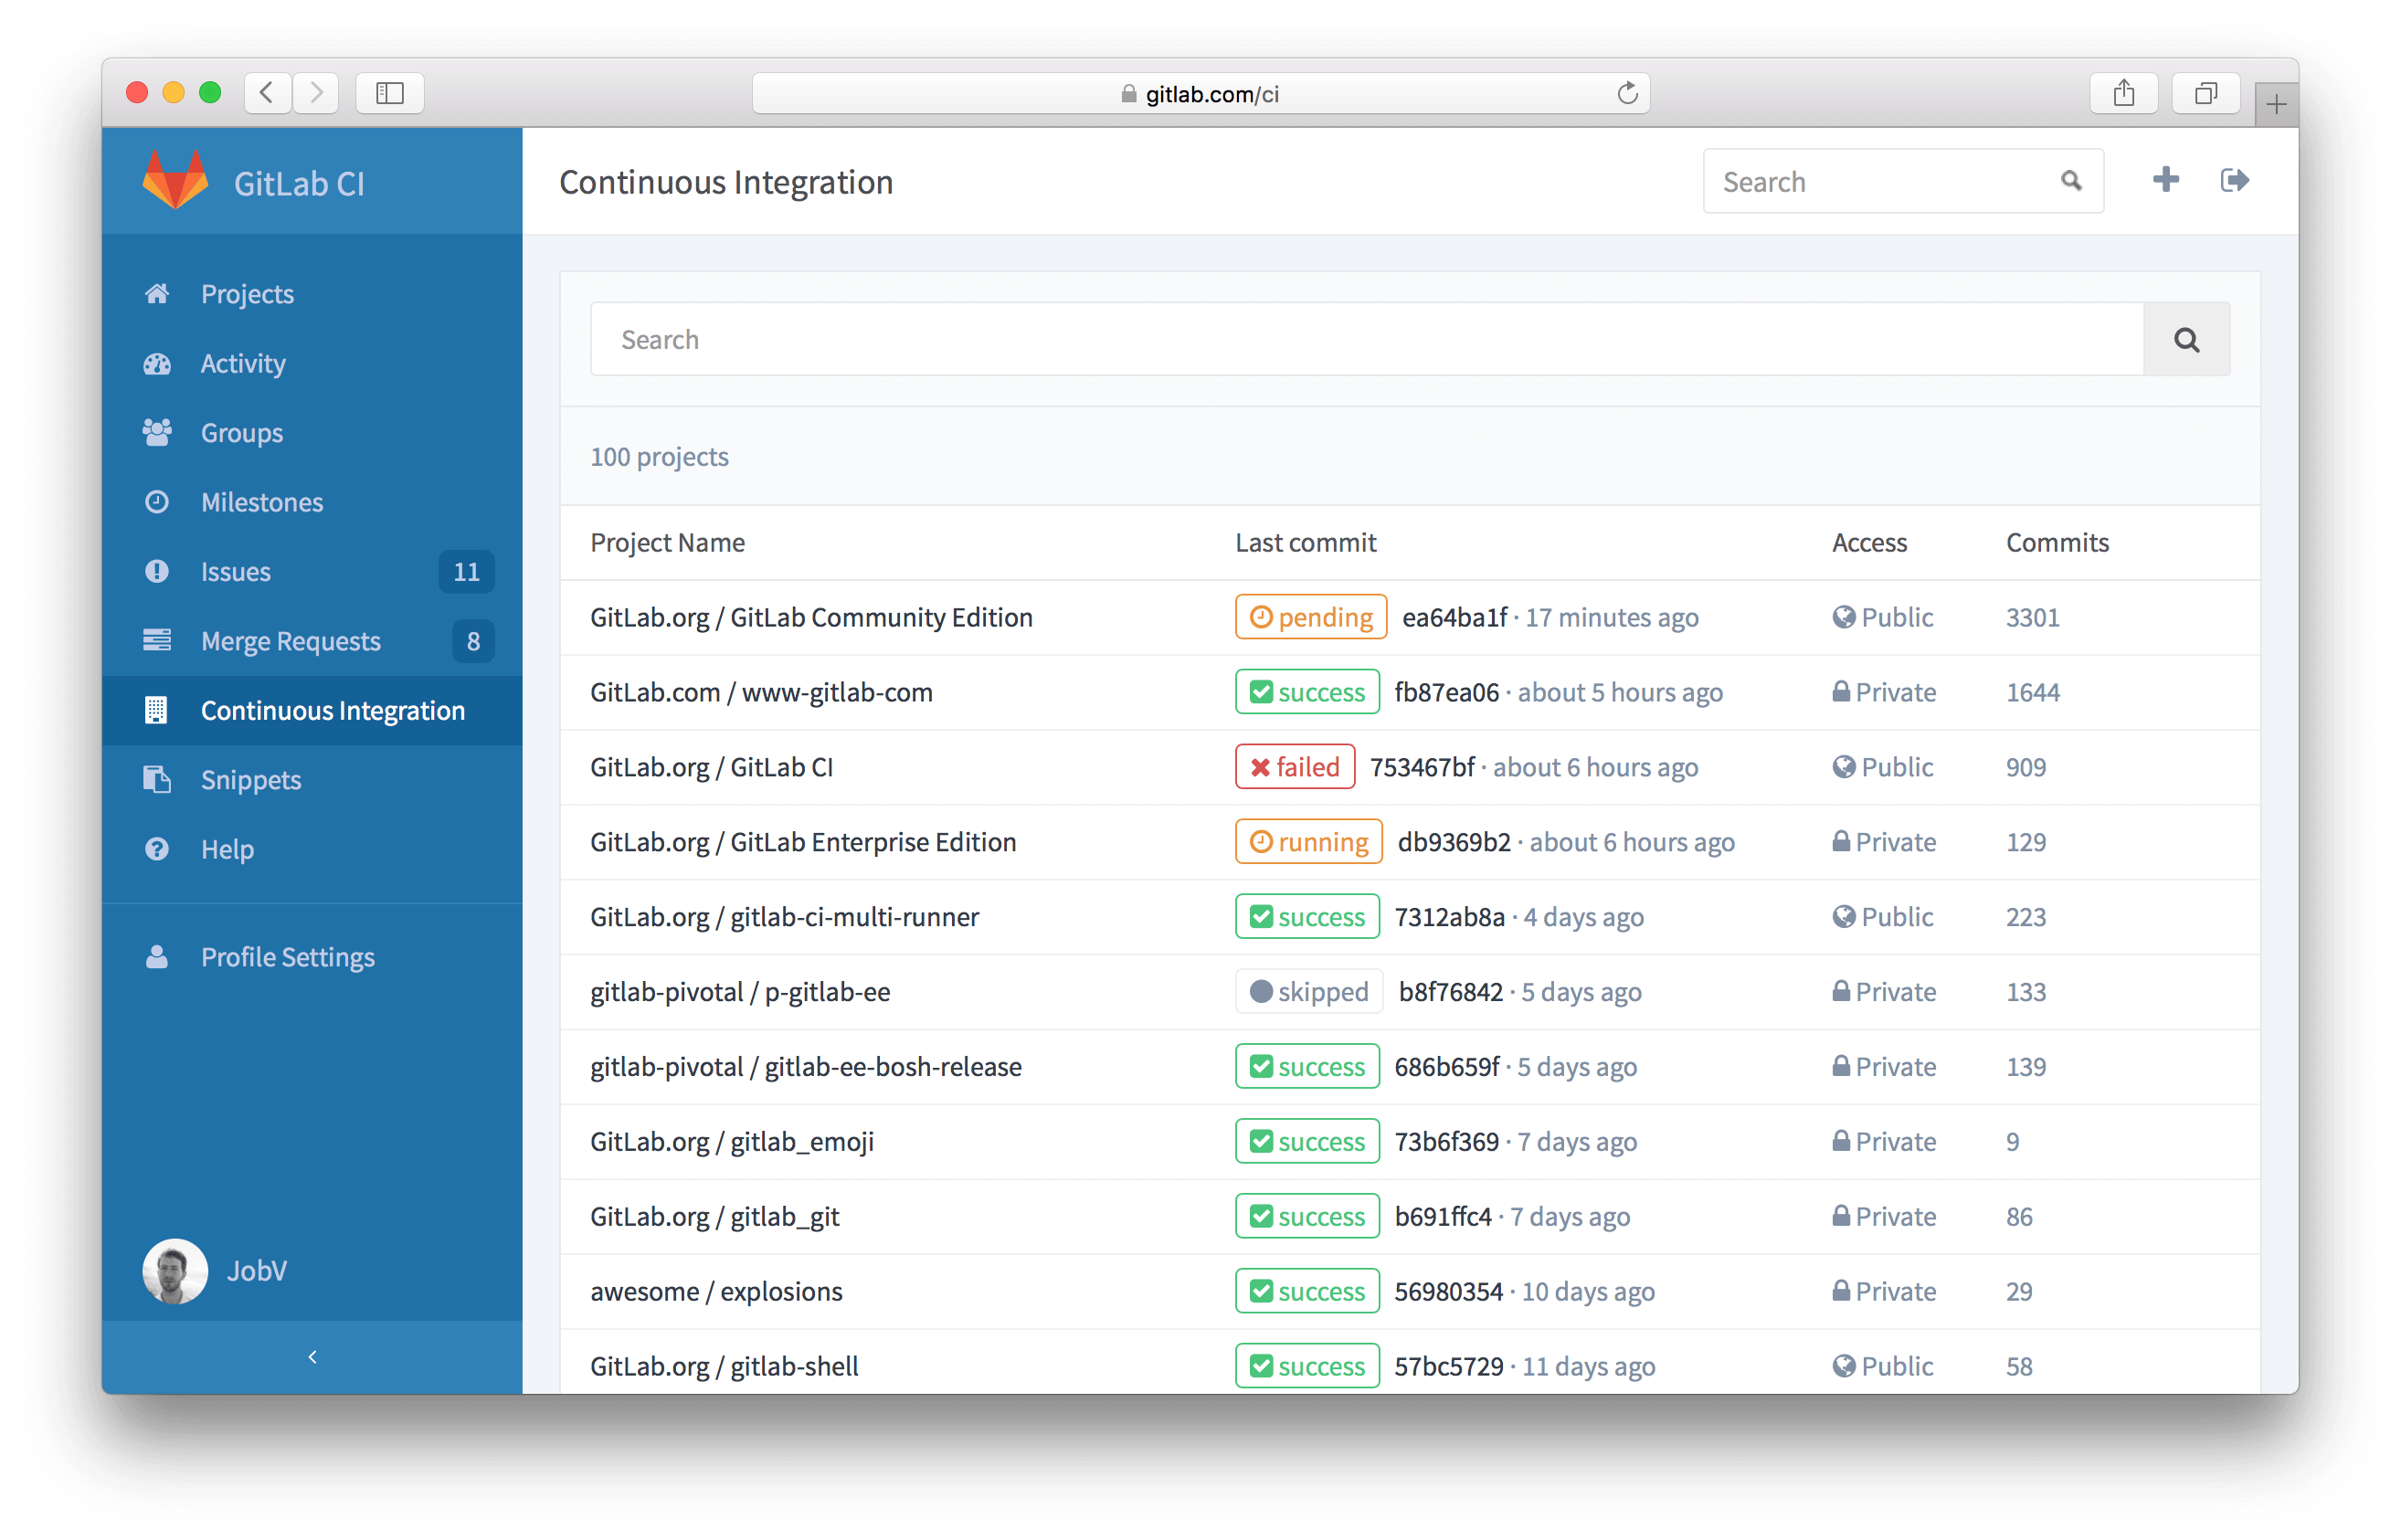 Continuous Integration in GitLab on the Dashboard